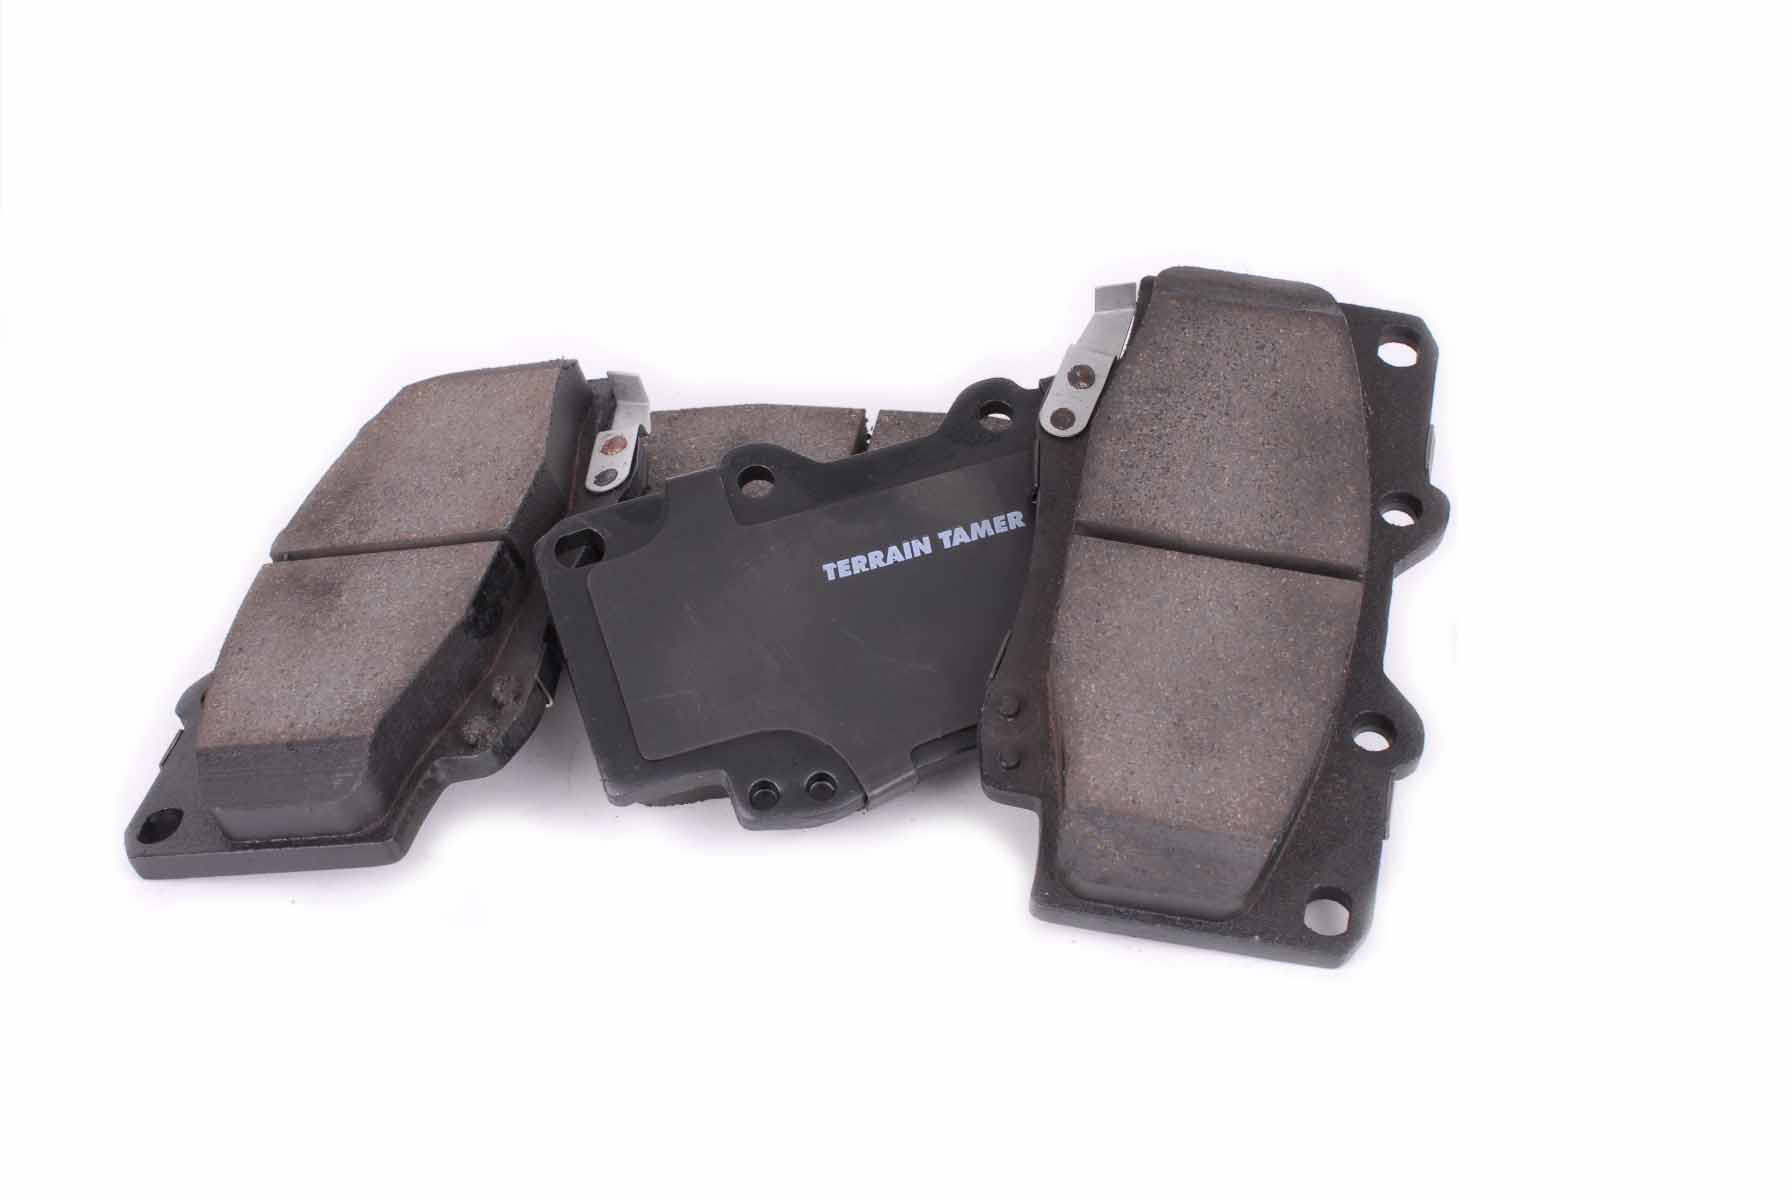 V Terrain Tamer Heavy duty ceramic brake pads for an economical solution for stopping your vehicle.